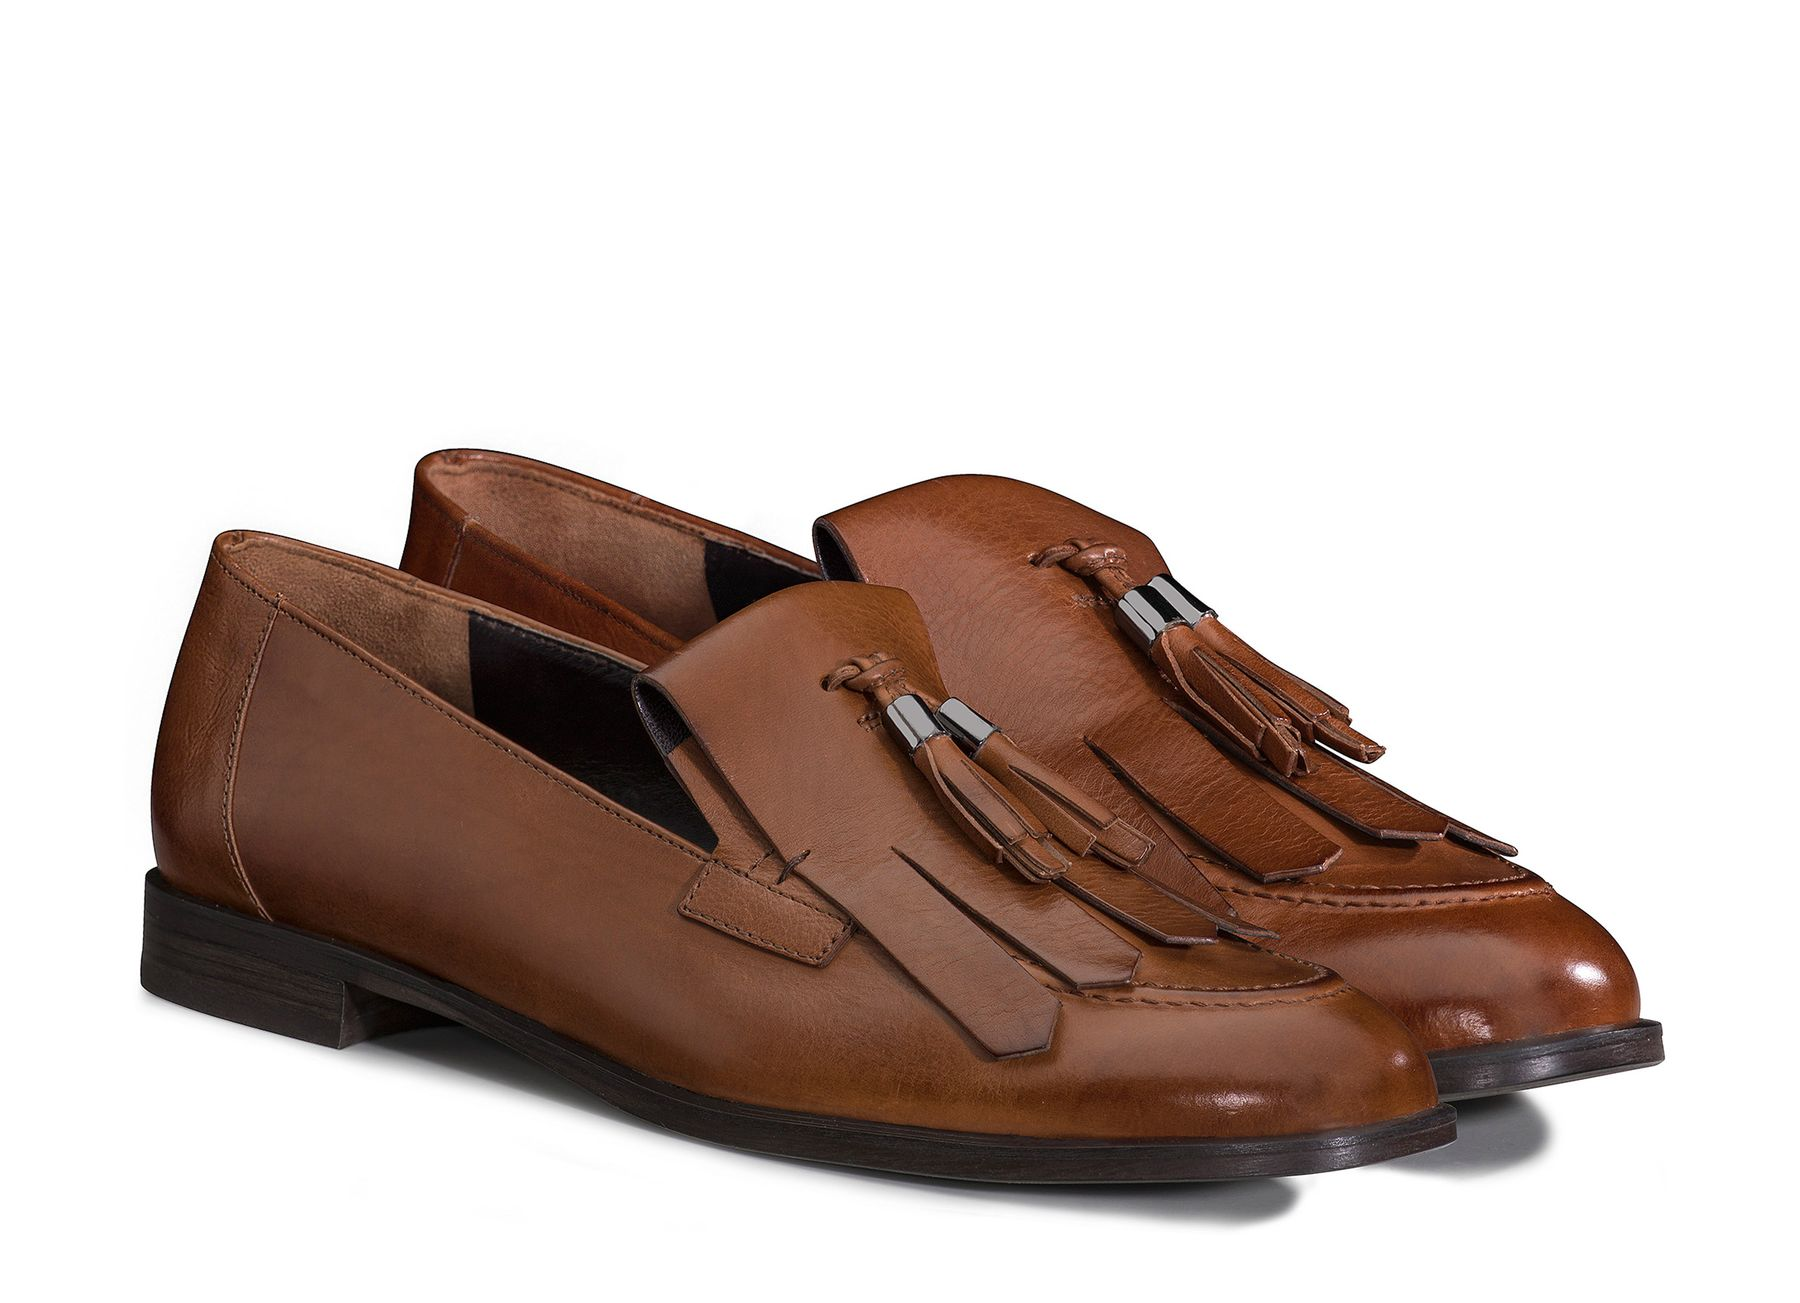 lace up in genuine shoes check out Tassel Loafers in Cognac - Paul Green